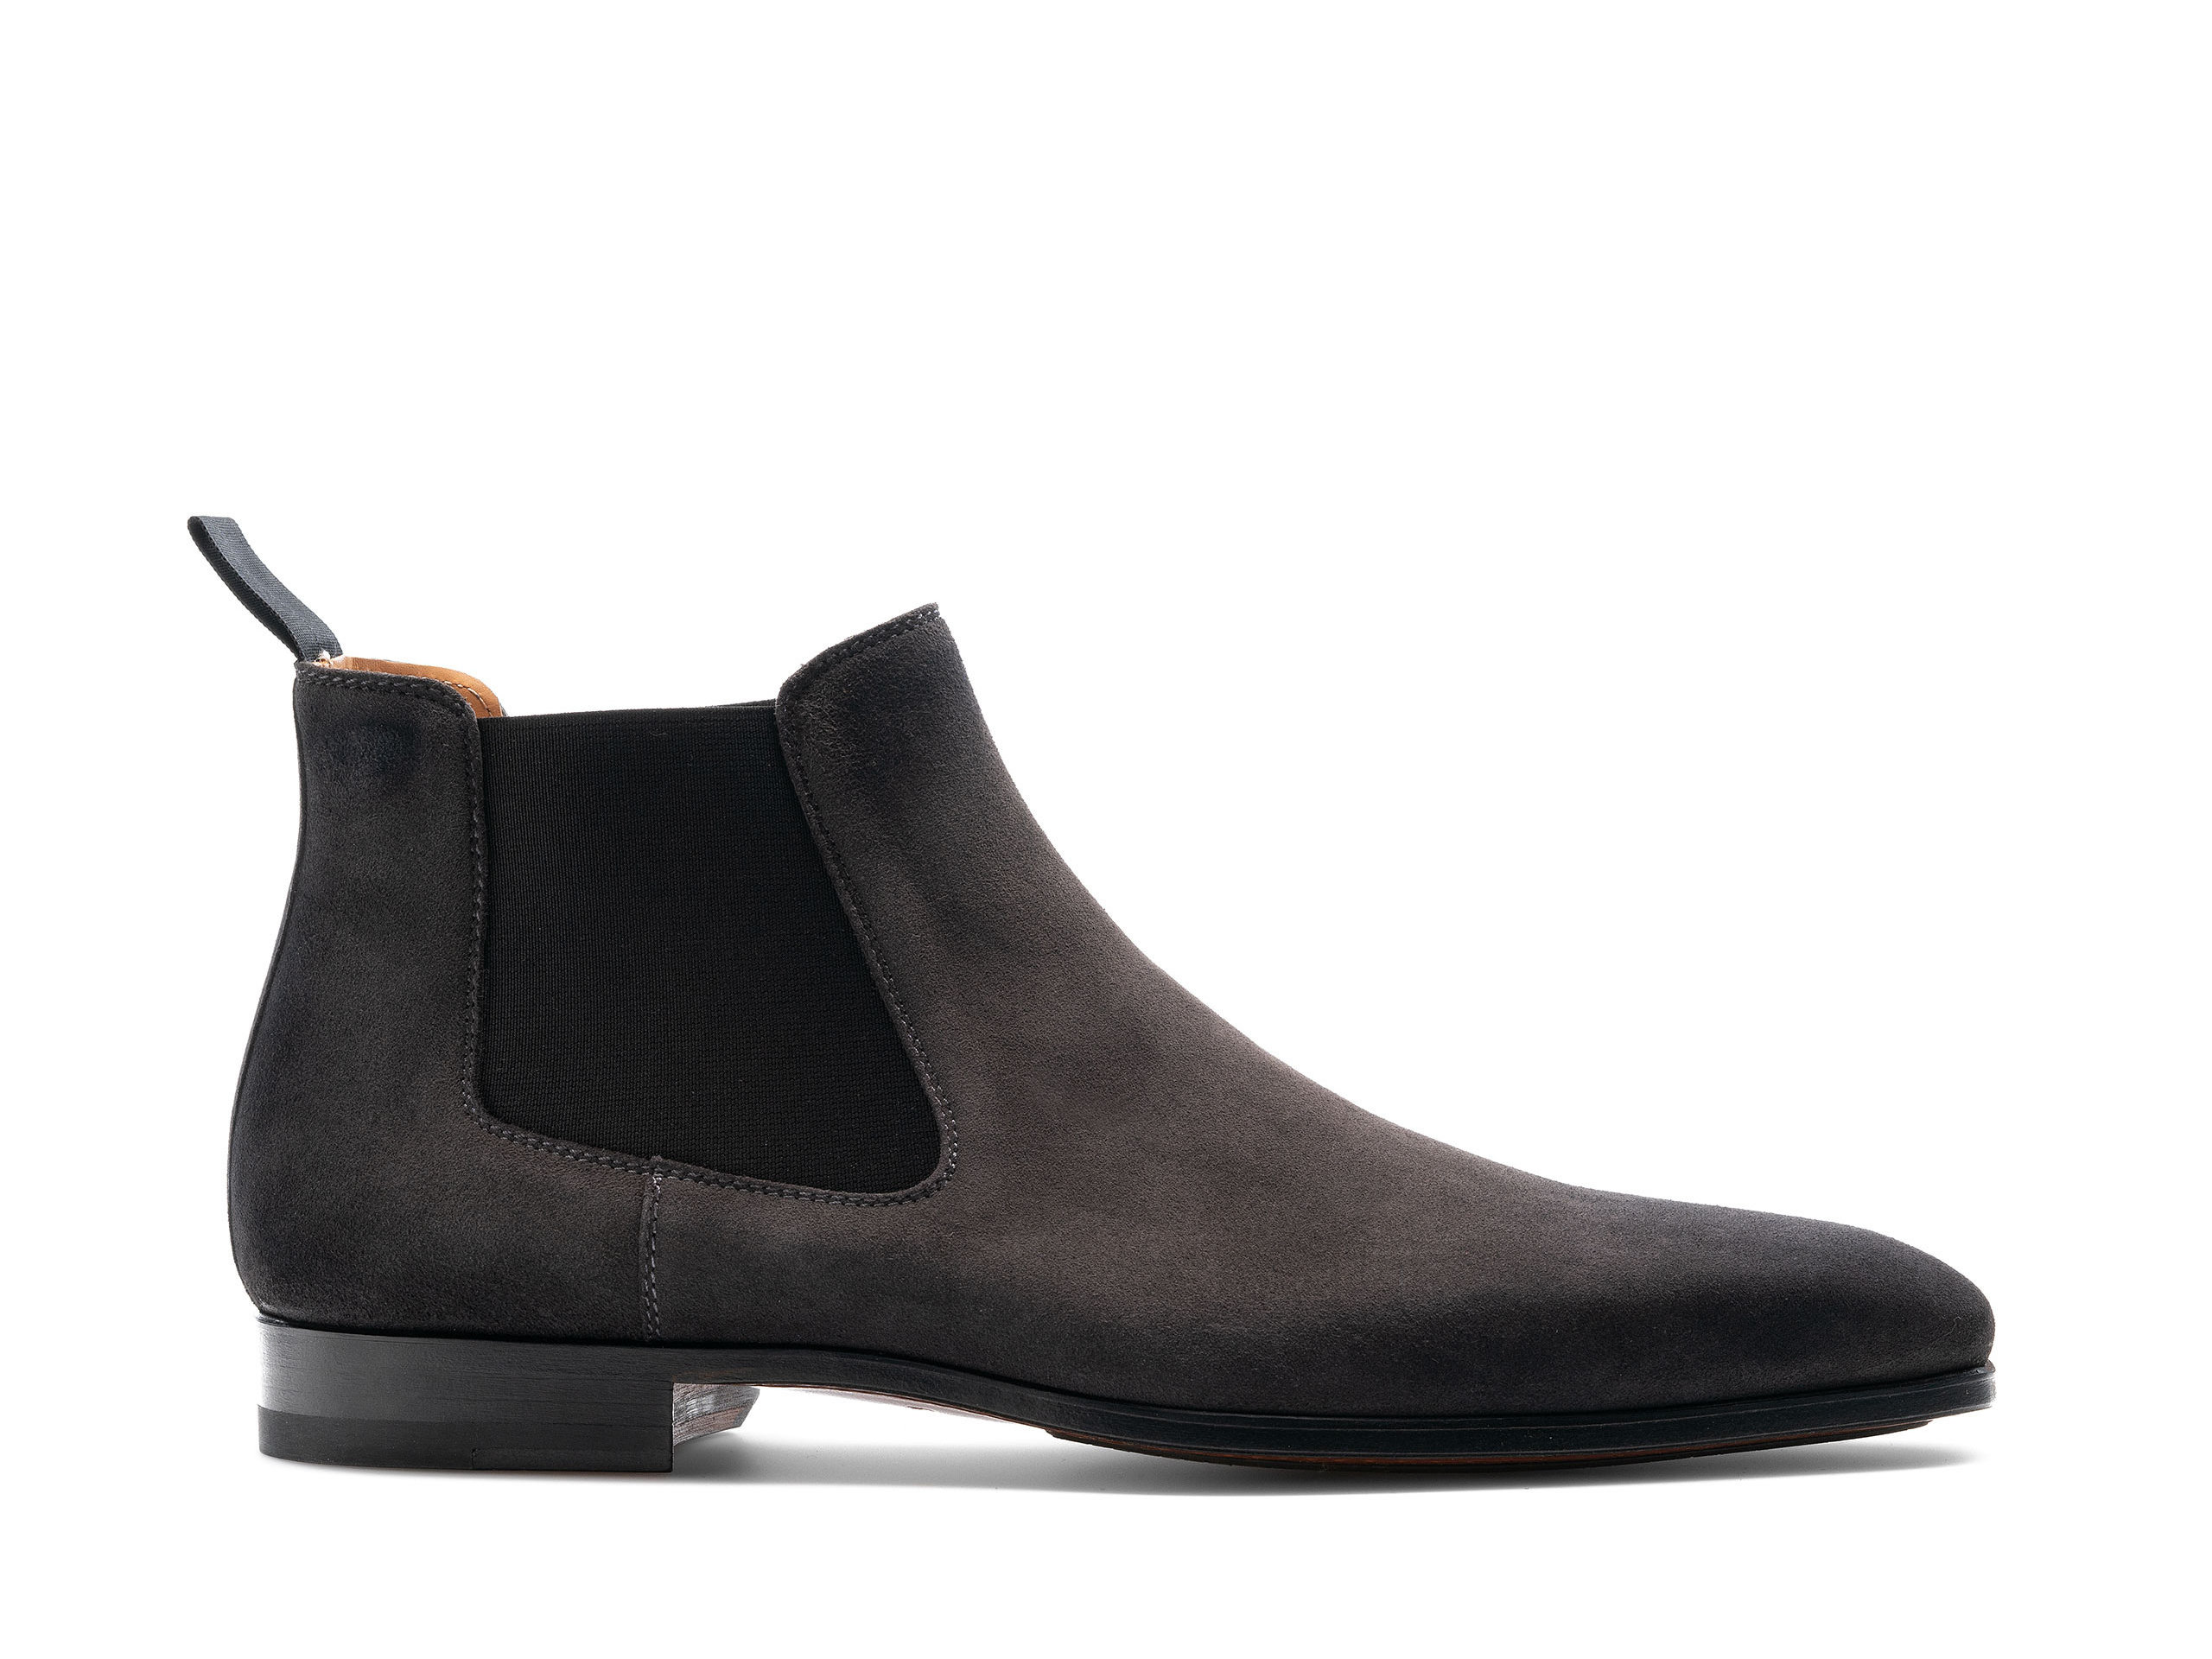 Side view of the Magnanni Shaw II Grey Suede Men's Suede Chelsea Boots